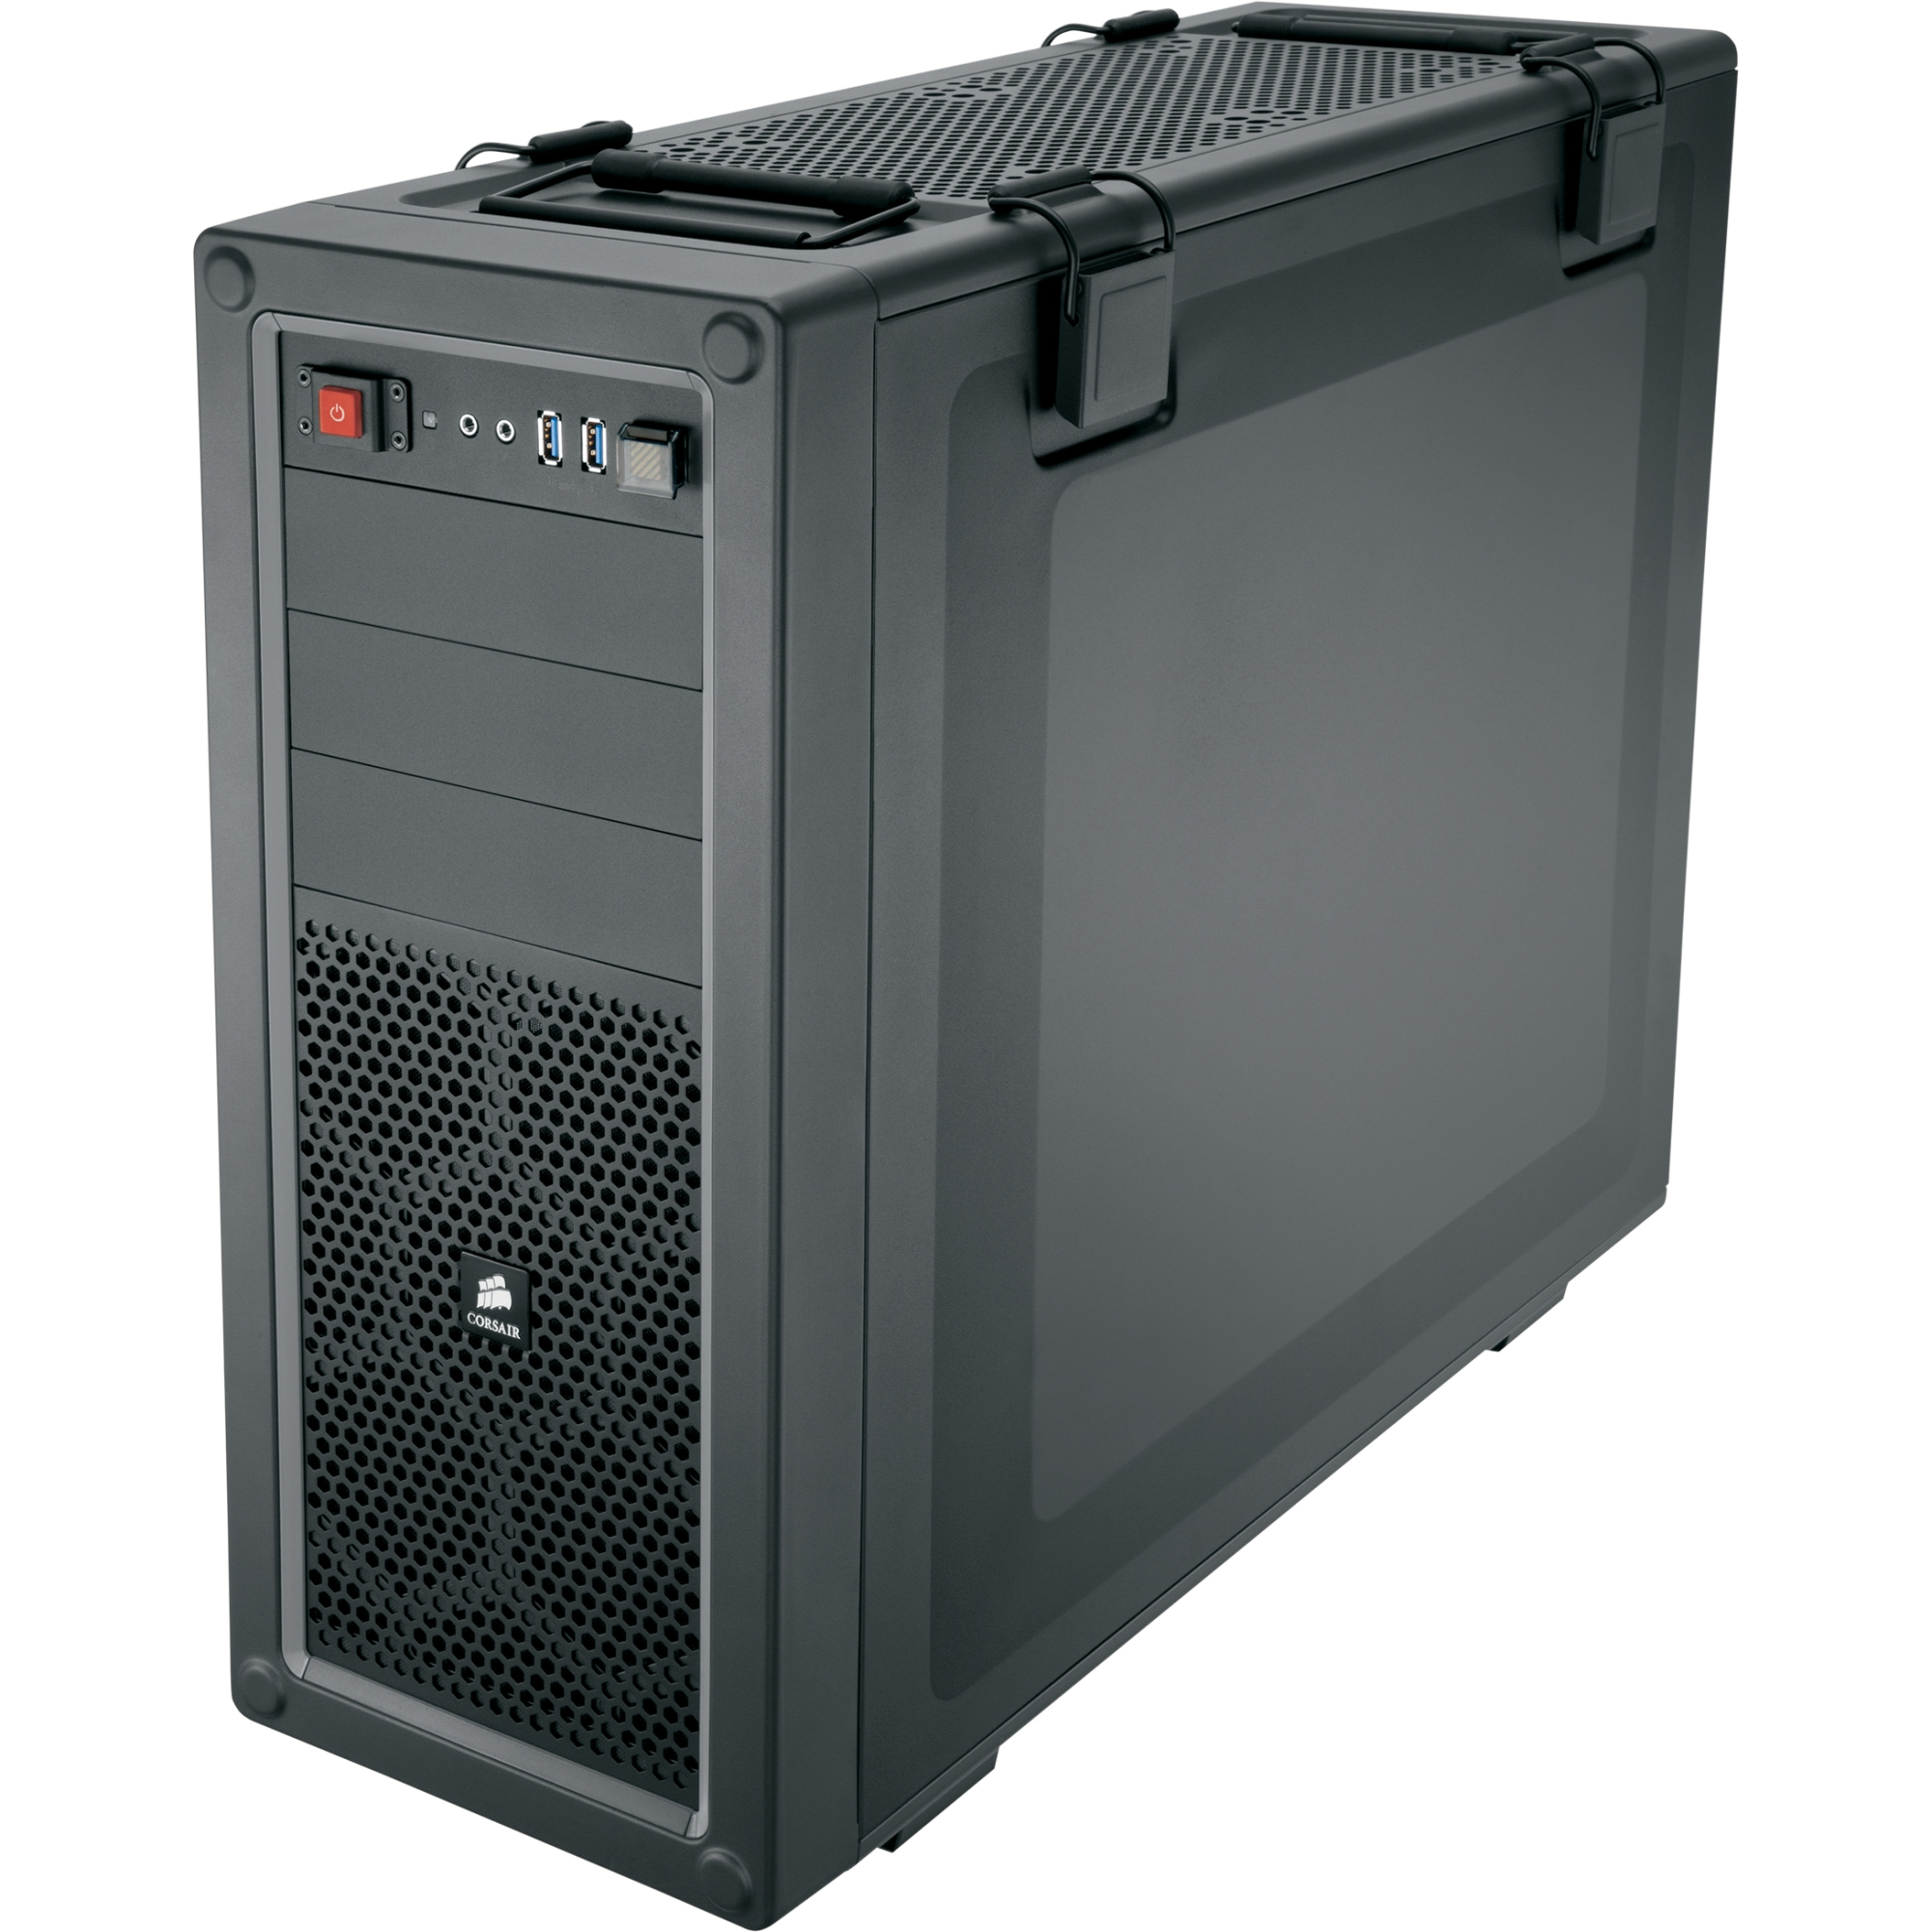 Vengeance C70 Mid-Tower Gaming Case - Gunmetal Black - Mid-tower - Gunmetal Black - Steel - 9 x Bay - 3 x Fan(s) Installed - ATX Micro ATX Motherboard Supported